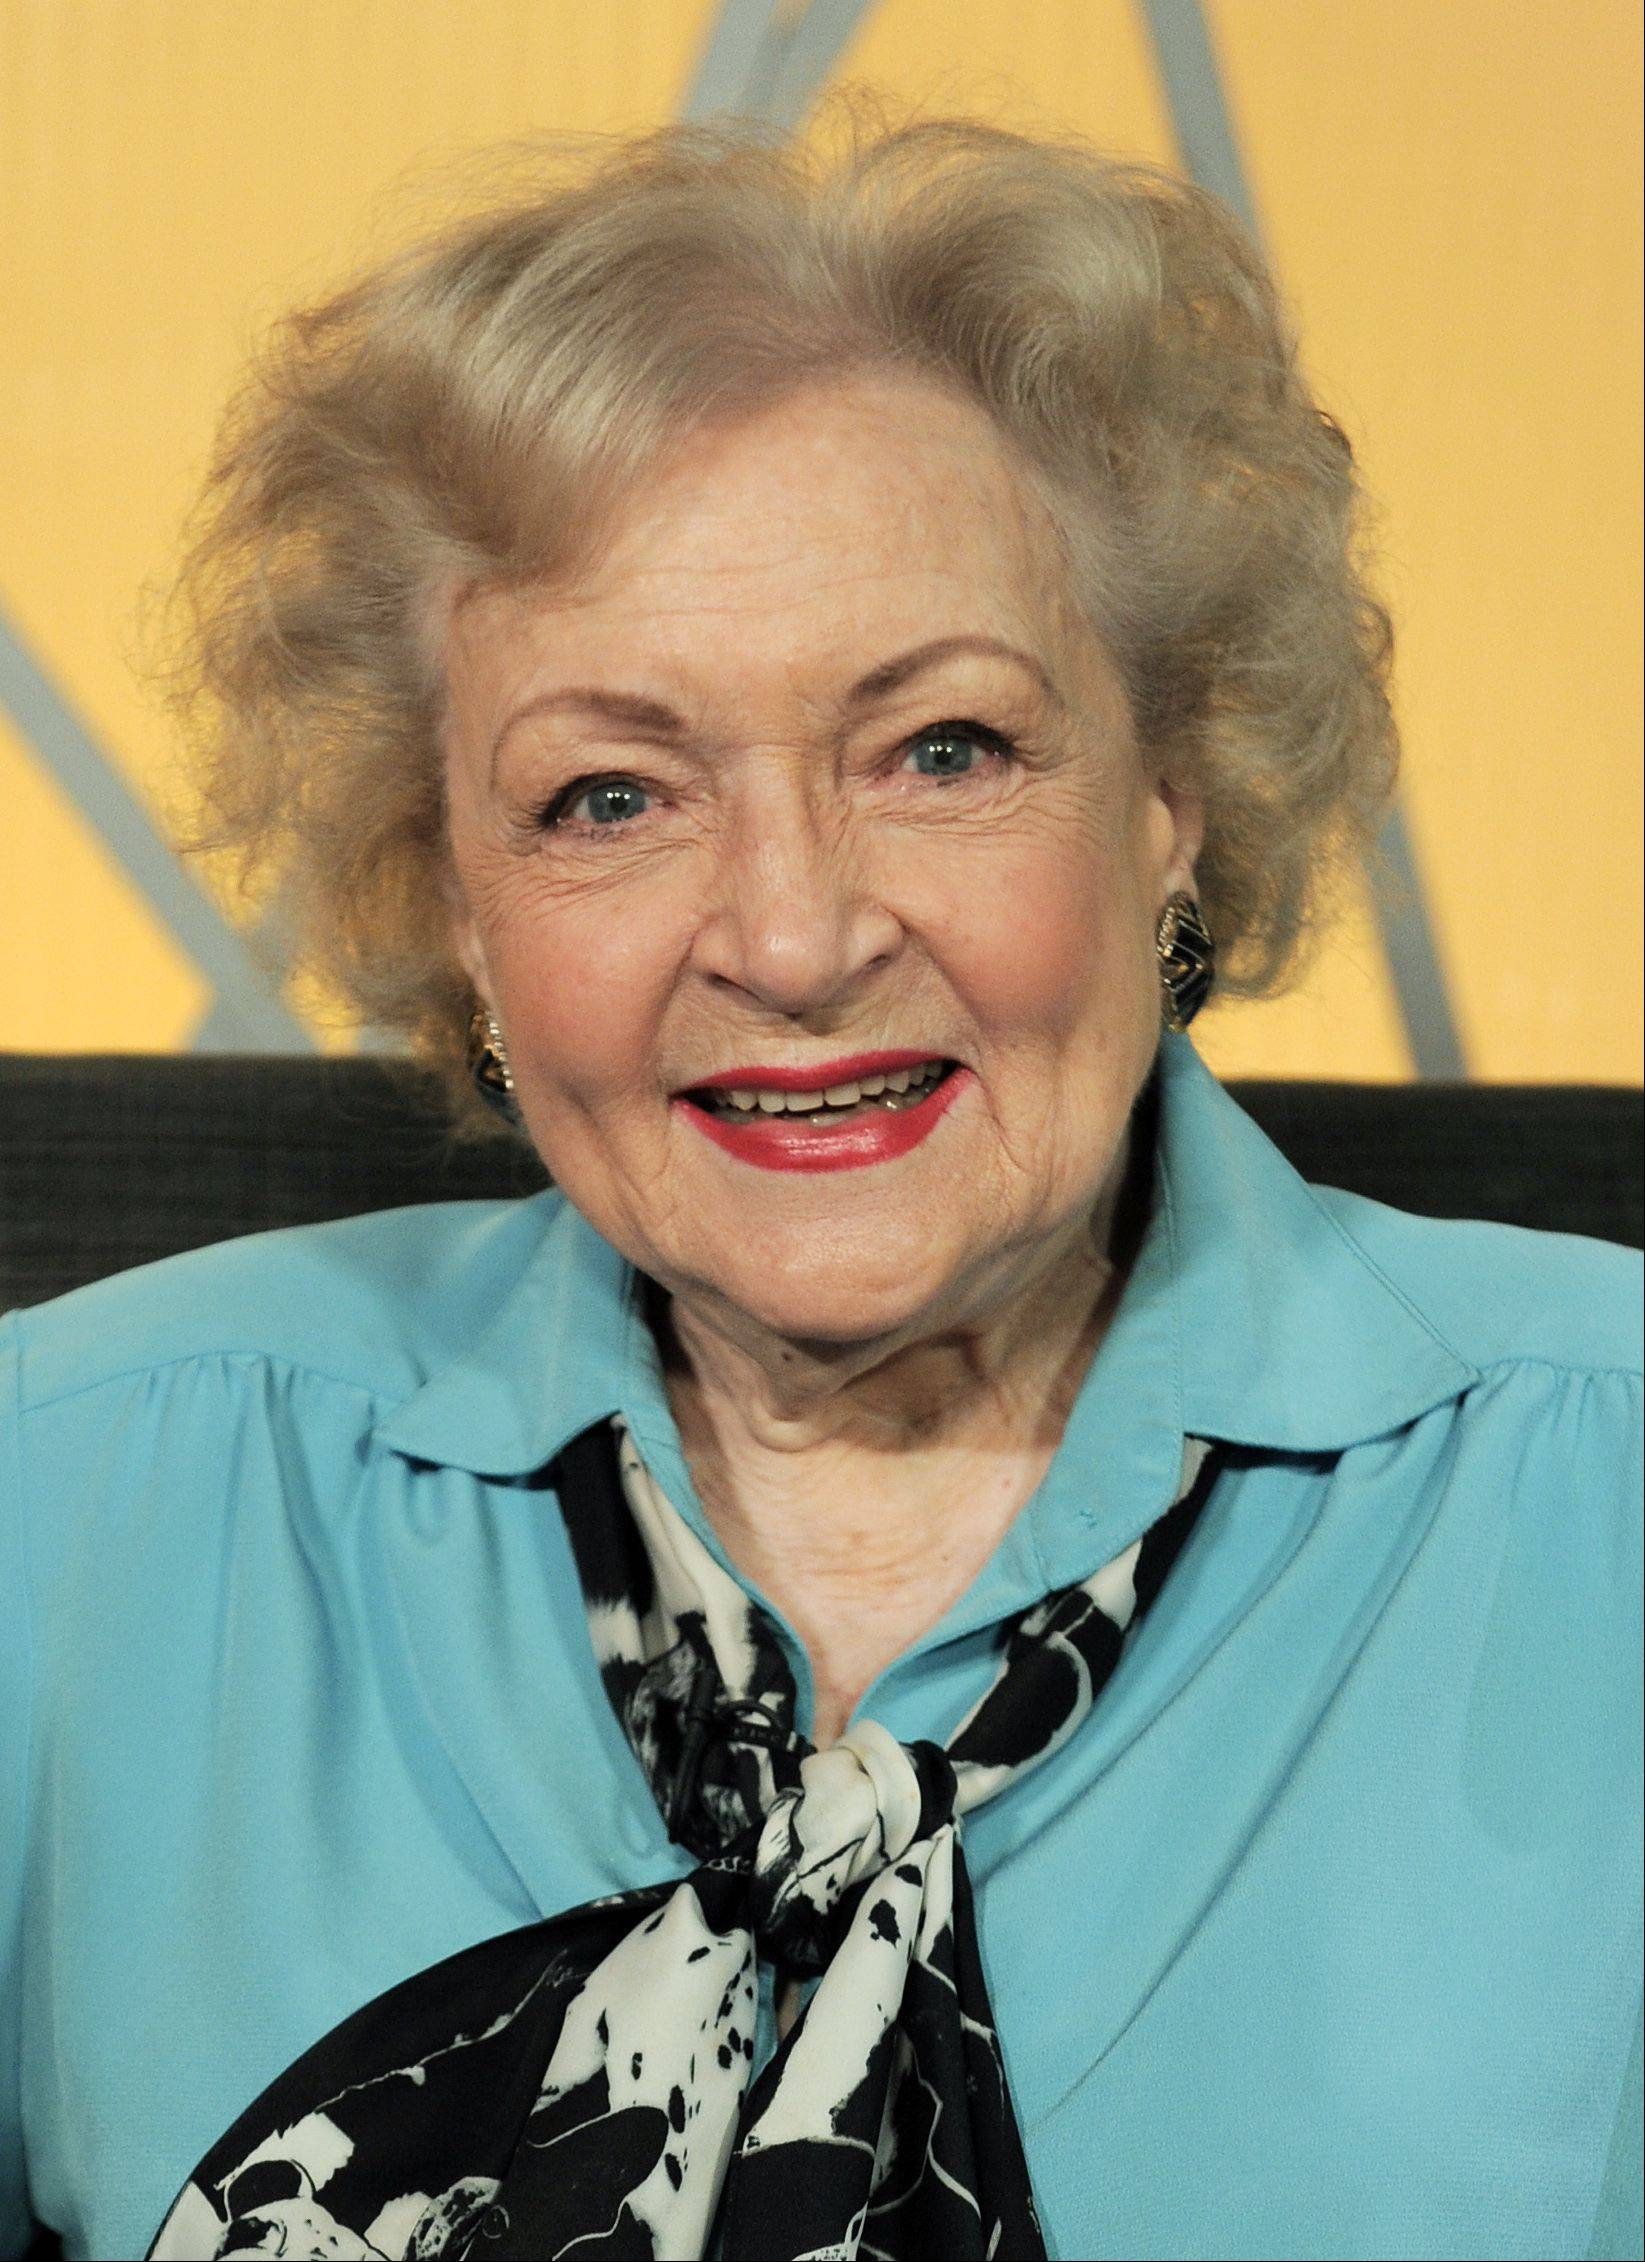 Actress and animal lover Betty White is joining the collection in wax at the Madame Tussauds museum in Washington.